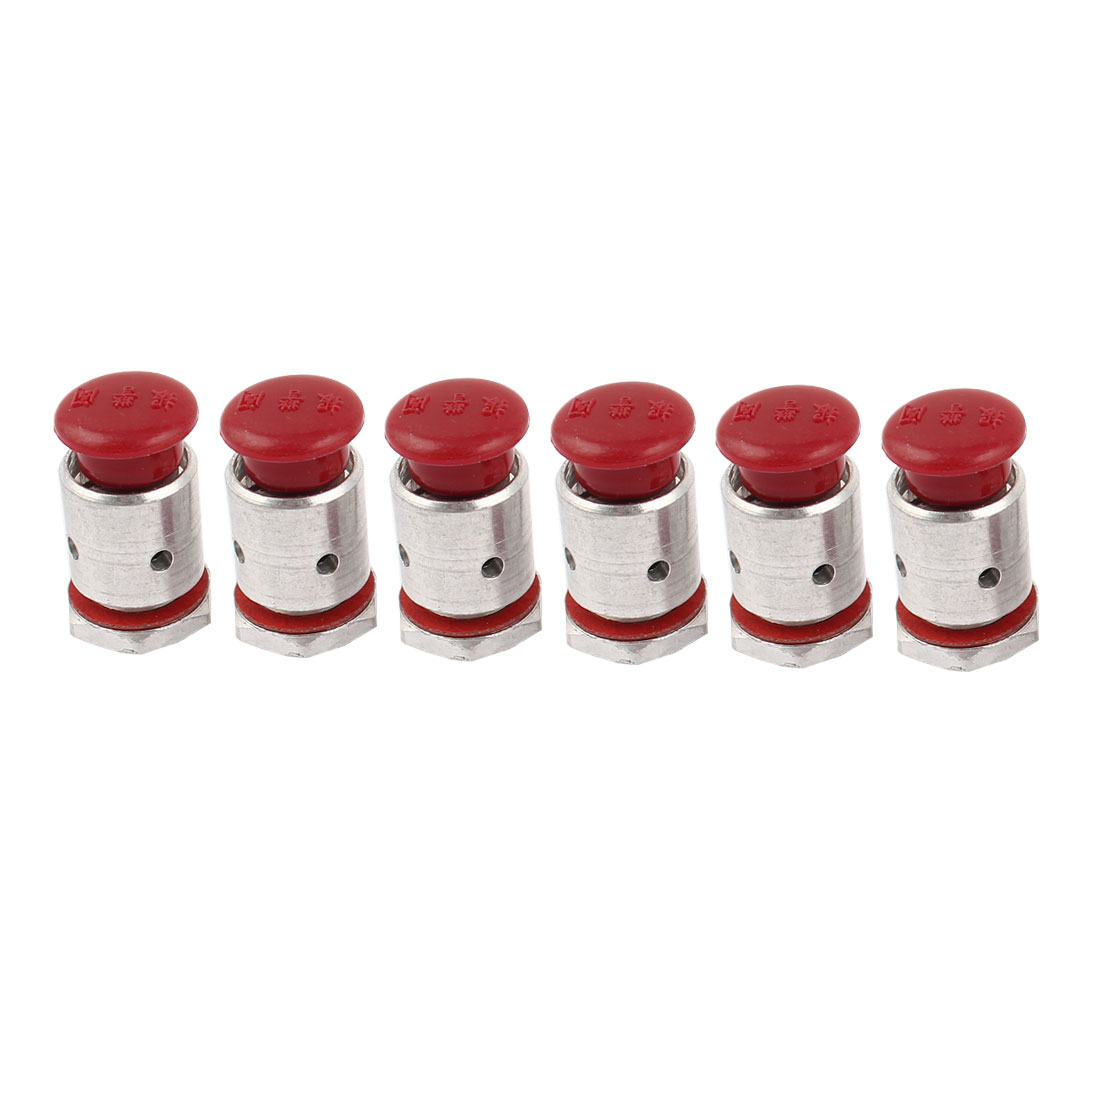 9mm Threaded Dia Pressure Cooker Top Pot Safety Valve Red Silver Tone 6 Pcs